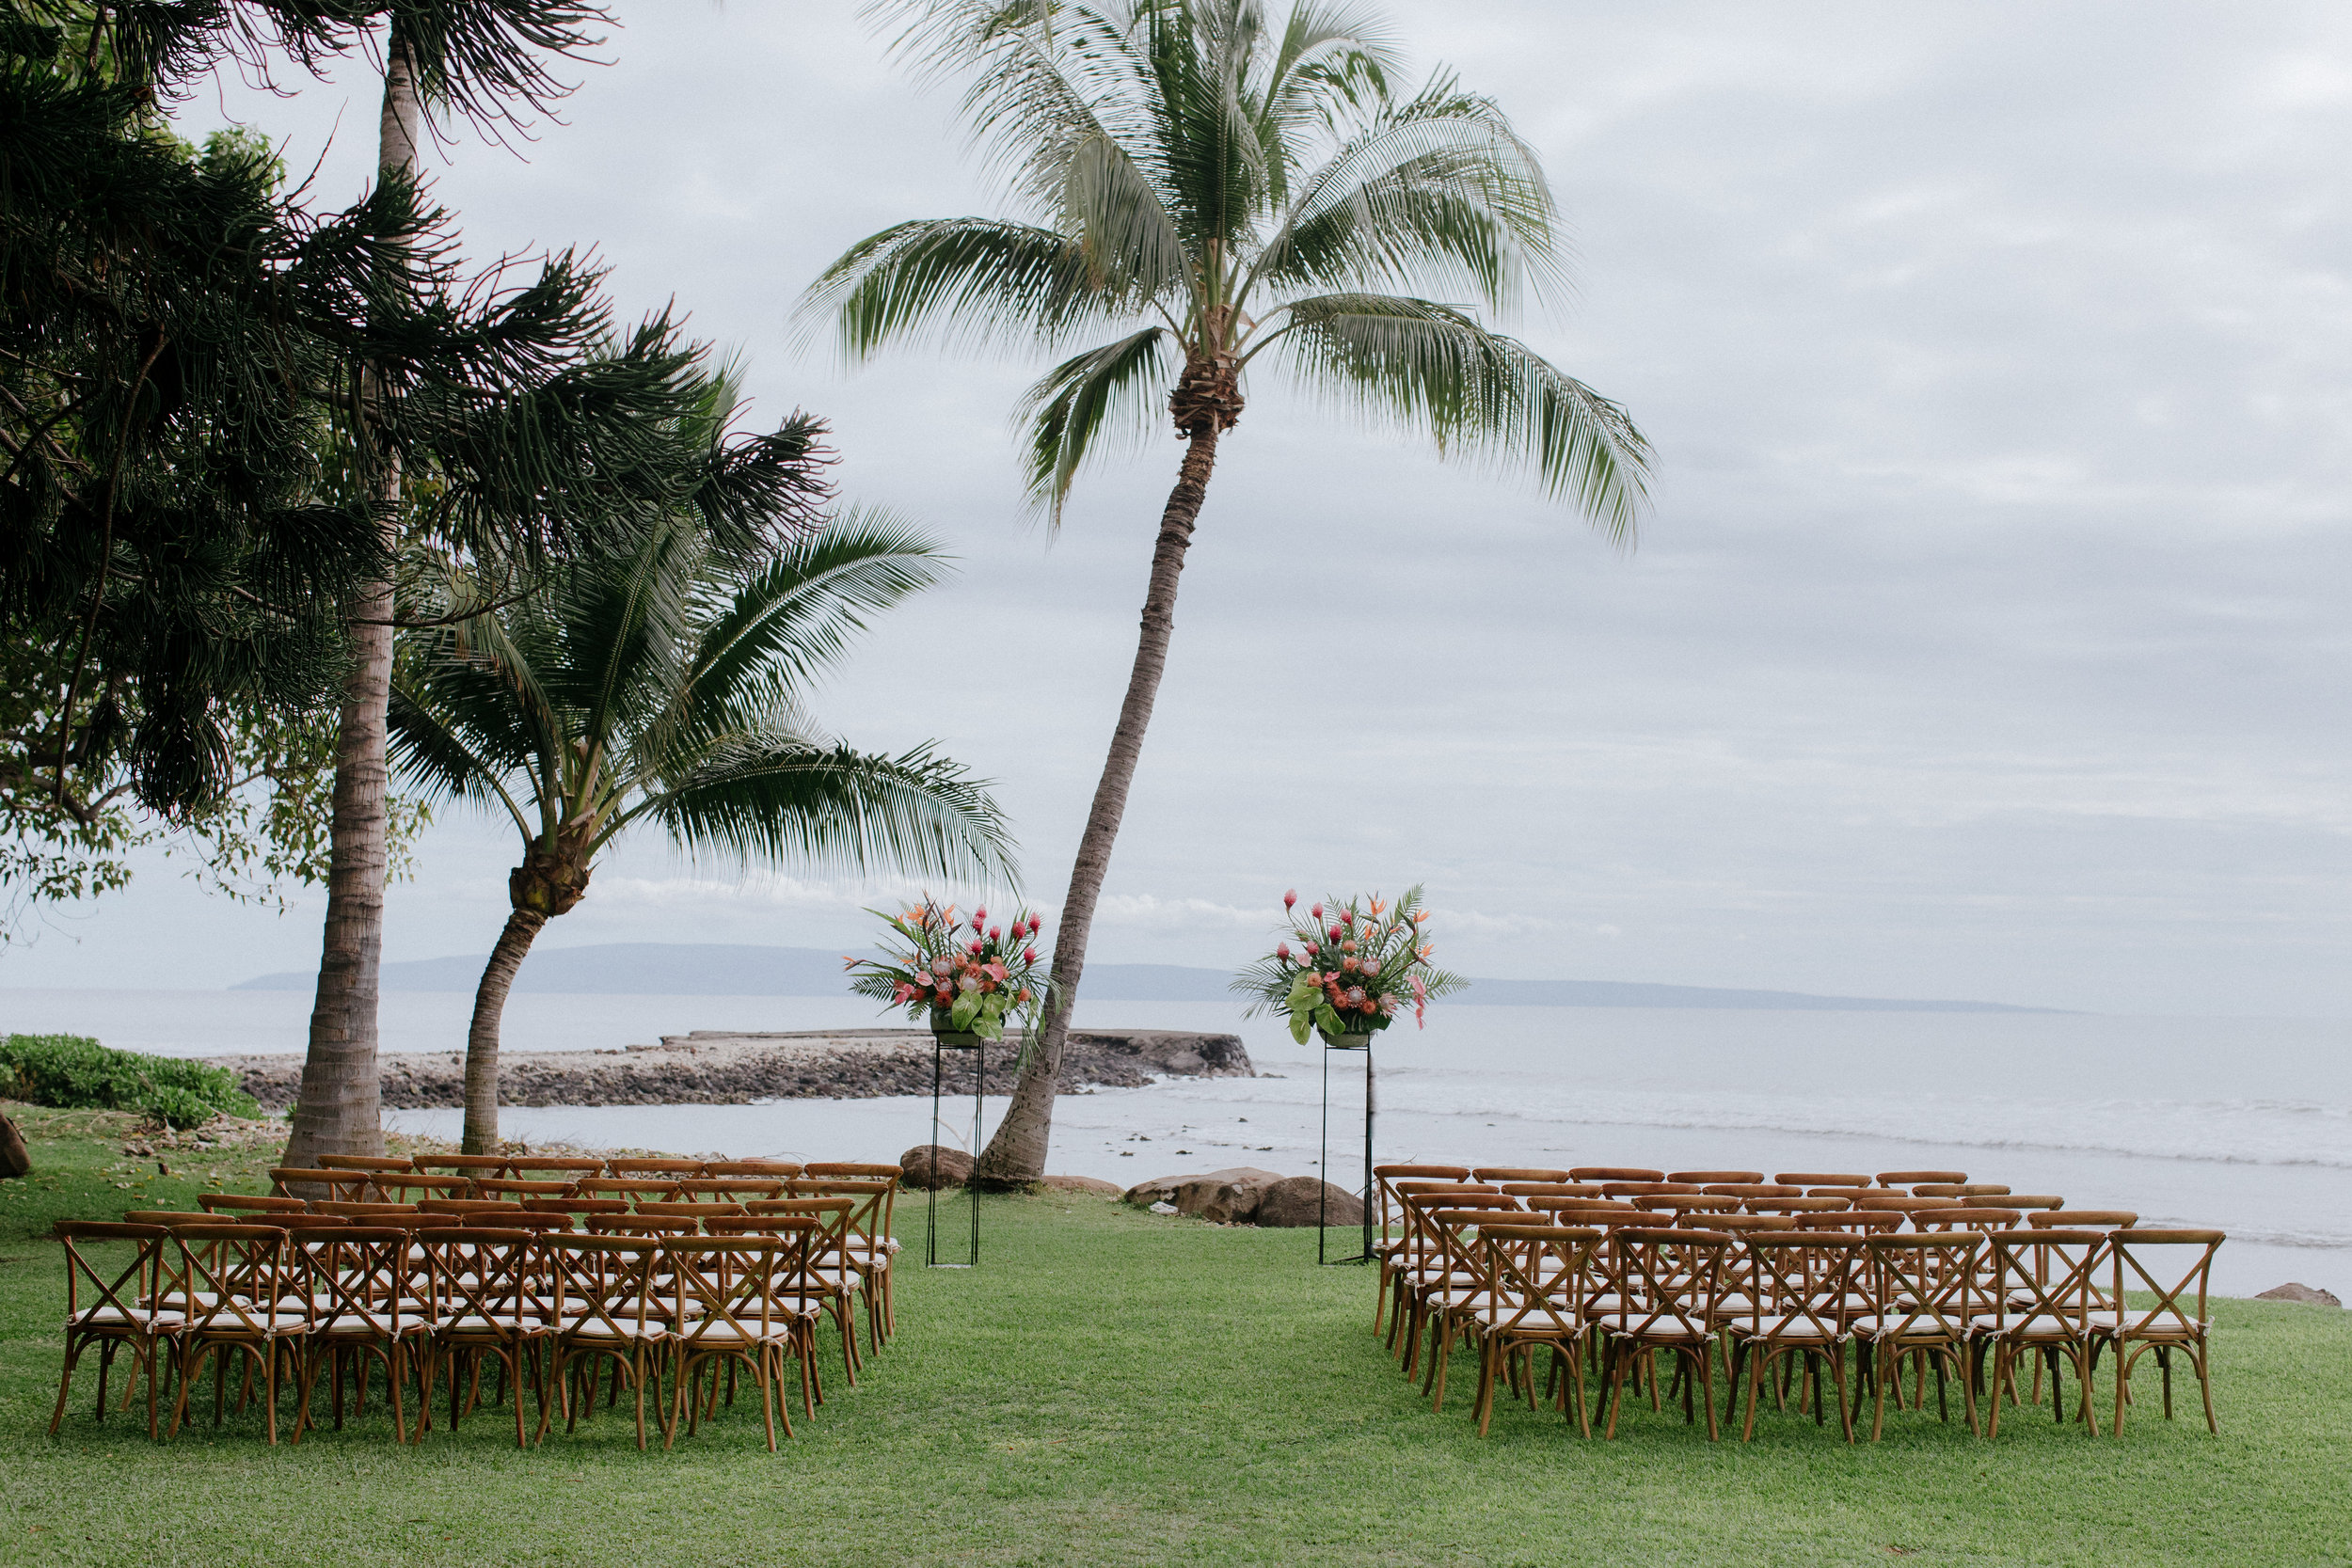 Chris-J-Evans-maui-wedding-JA117.jpg